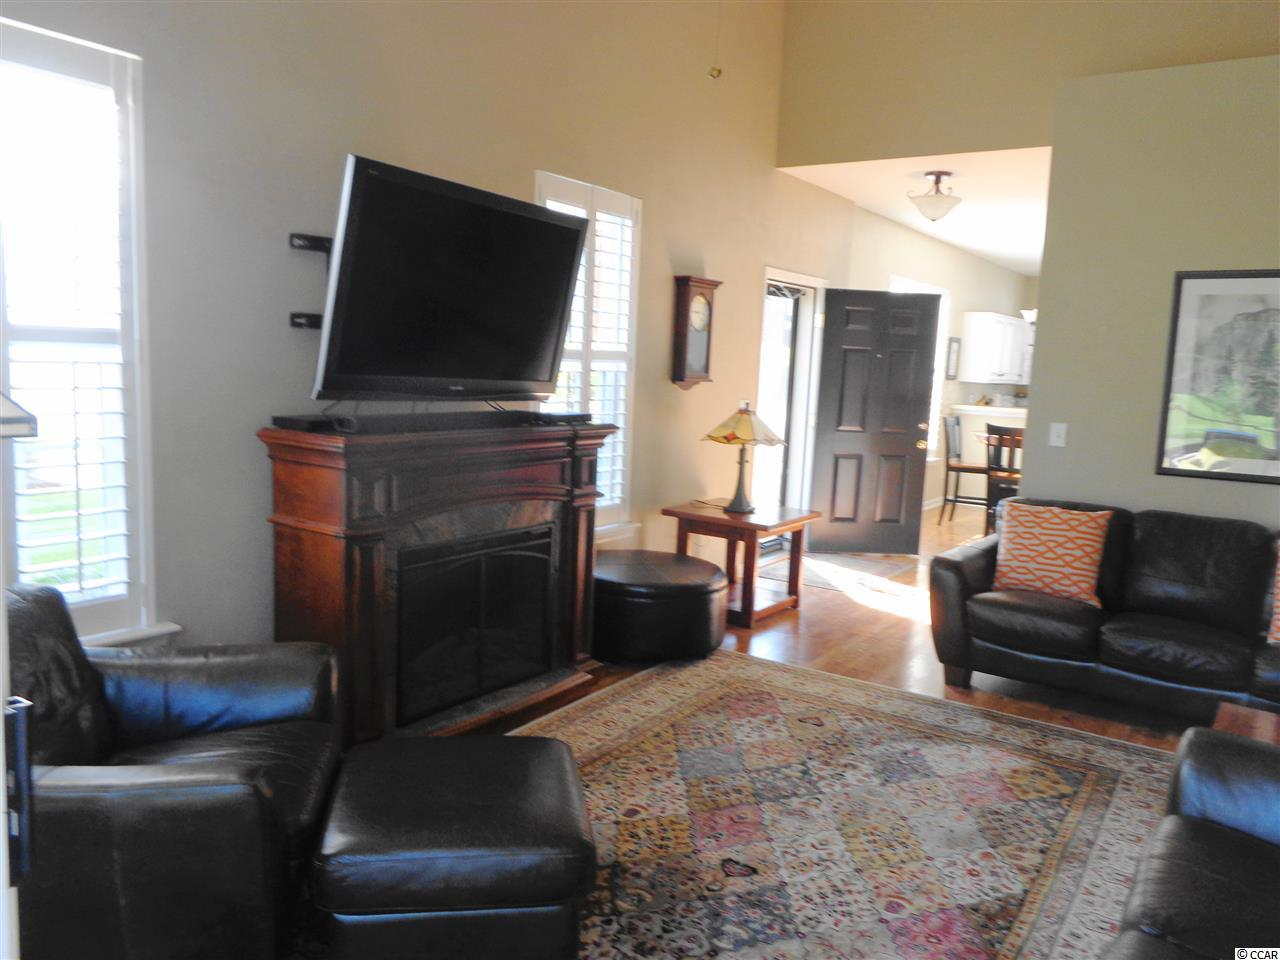 MLS #1716845 at  ST ANDREWS TOWNHOMES for sale